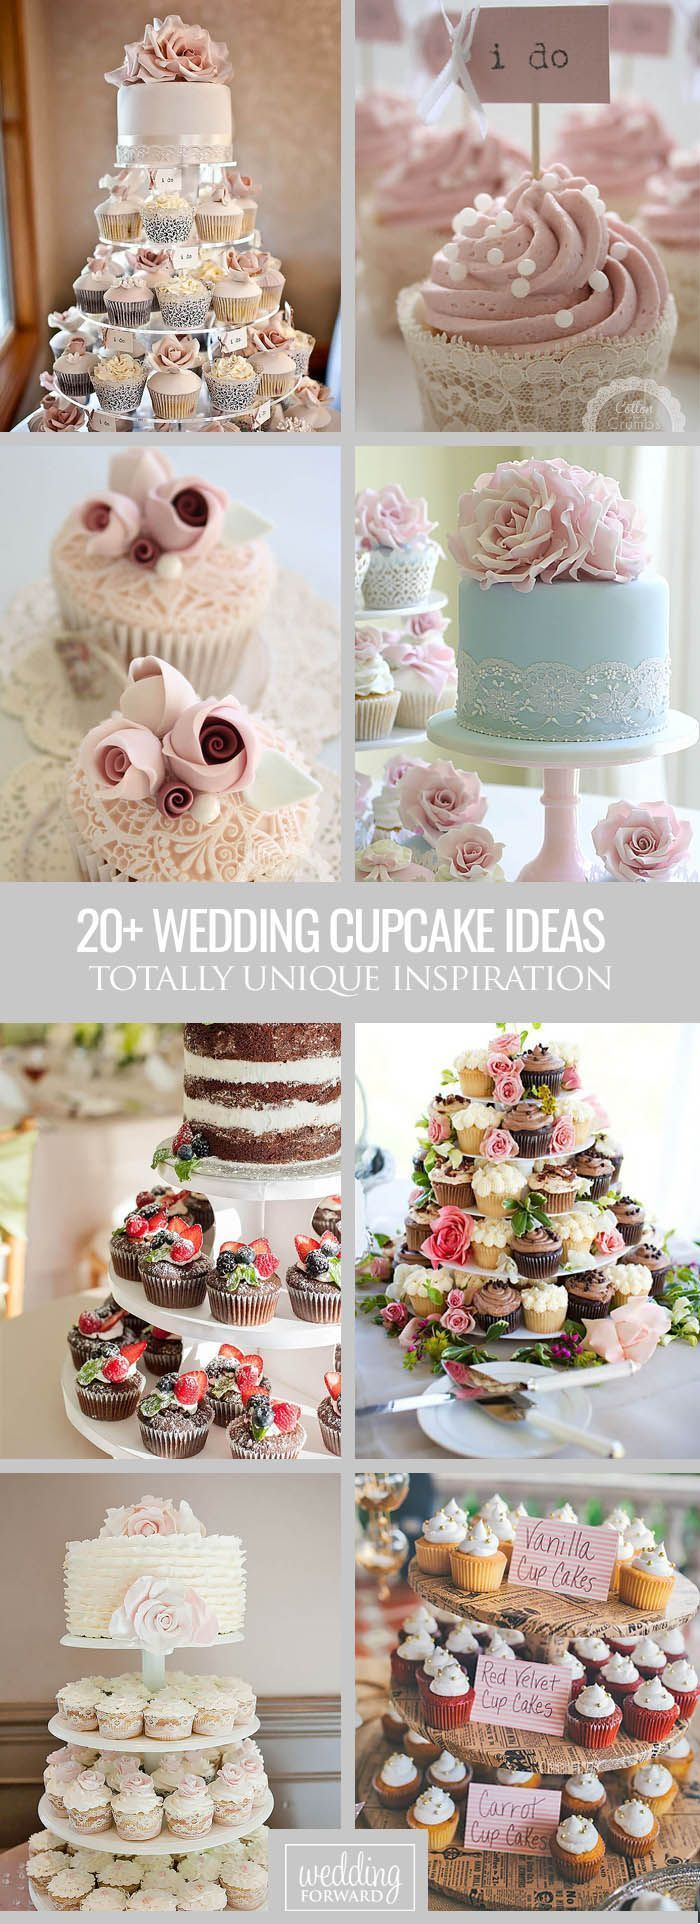 2908 best Wedding Cakes images on Pinterest | Cake wedding, Conch ...